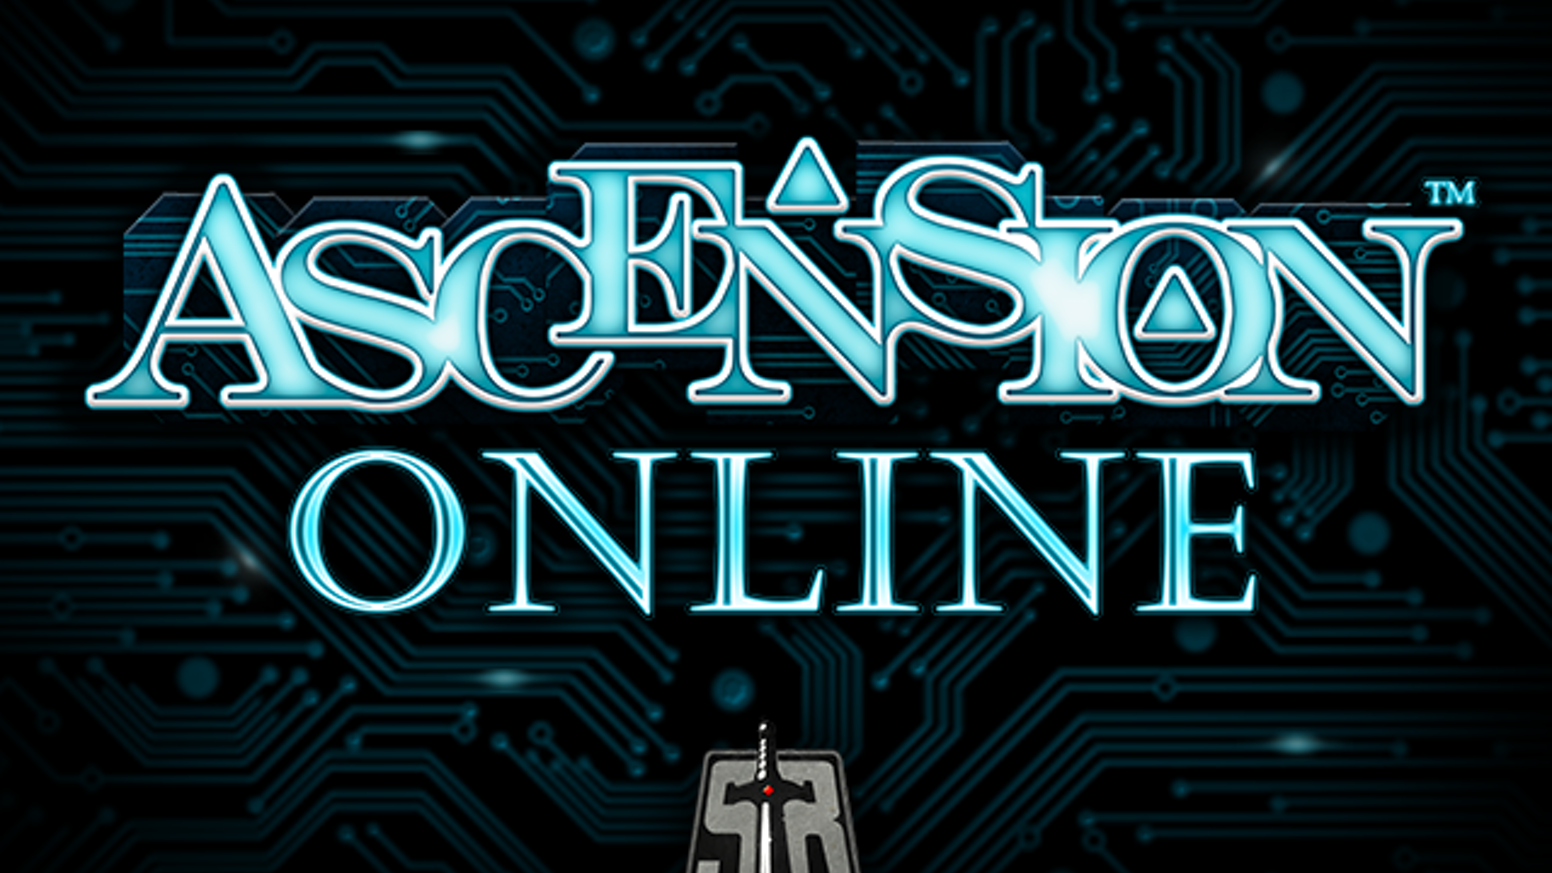 Bring the Ascension Deckbuilding Game to Android and PC with new features like online tournaments, campaign mode, and more!